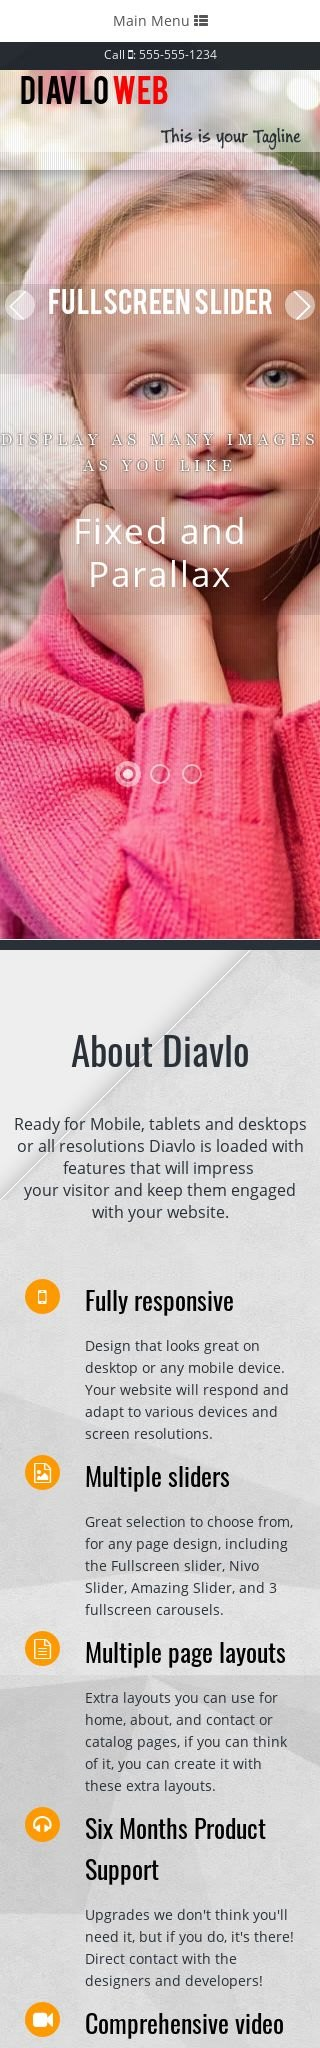 Mobile: Christmas Web Template